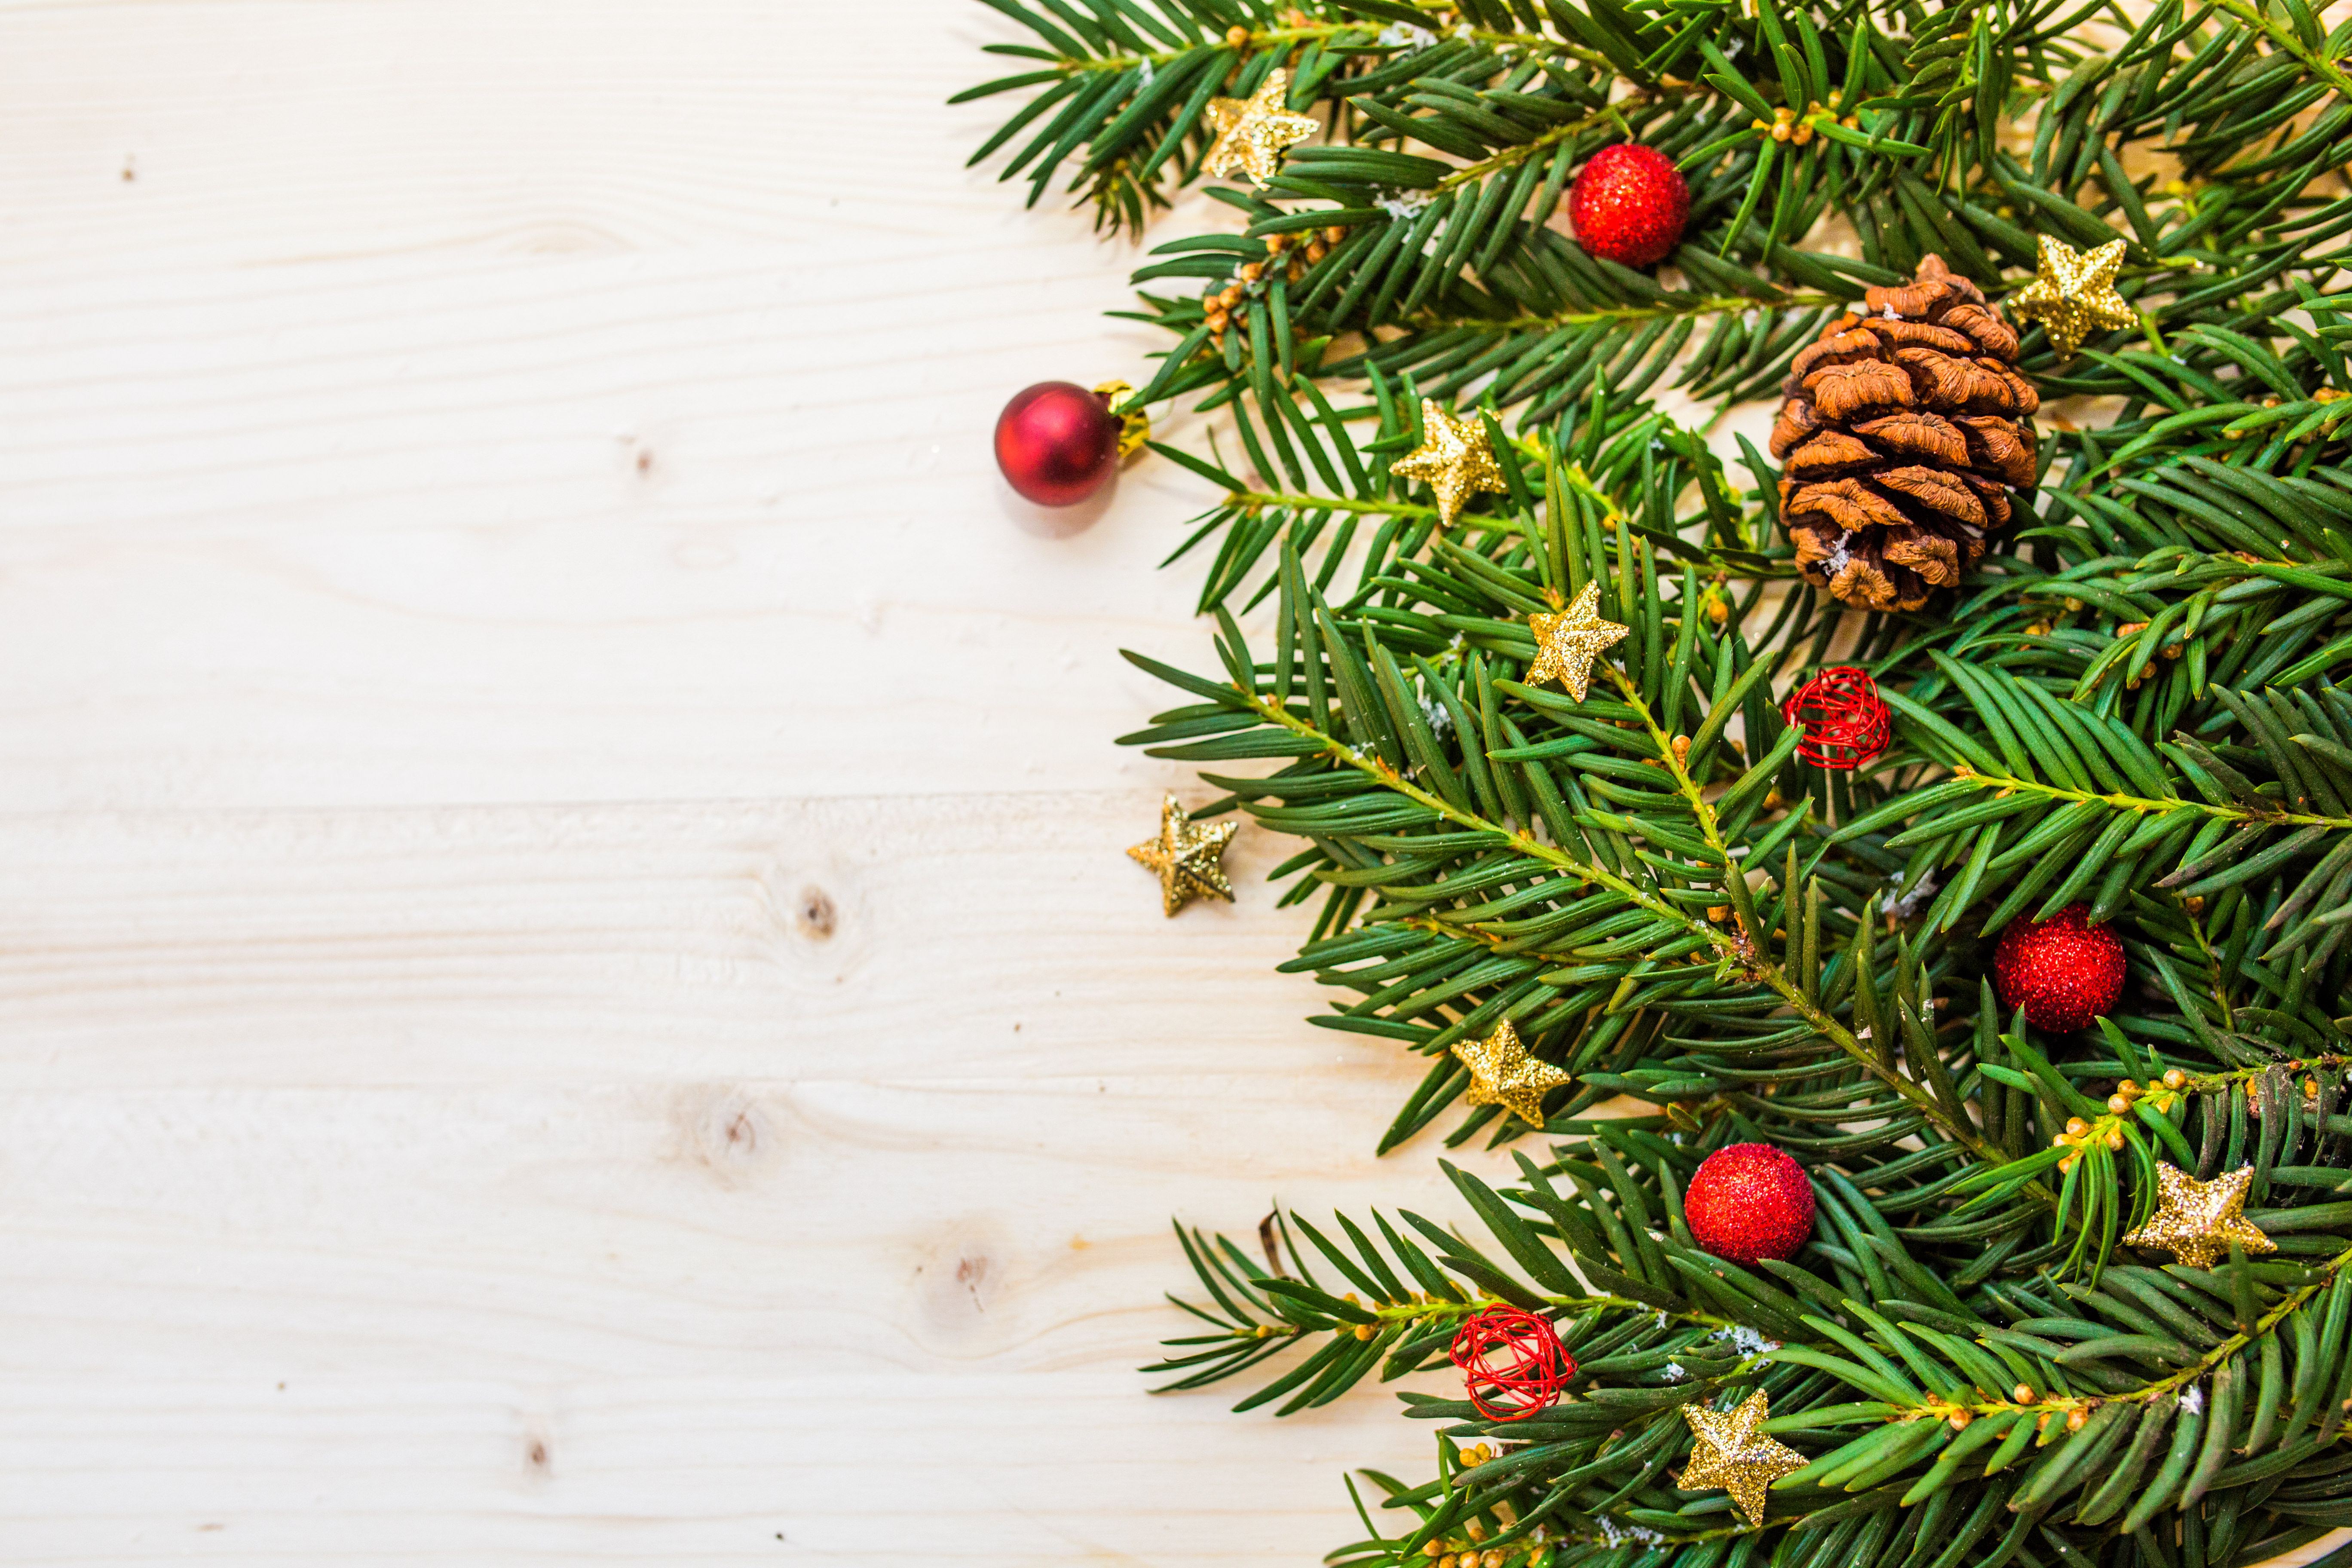 Free Stock Photos Of Christmas Tree Pexels - Plant Christmas Trees